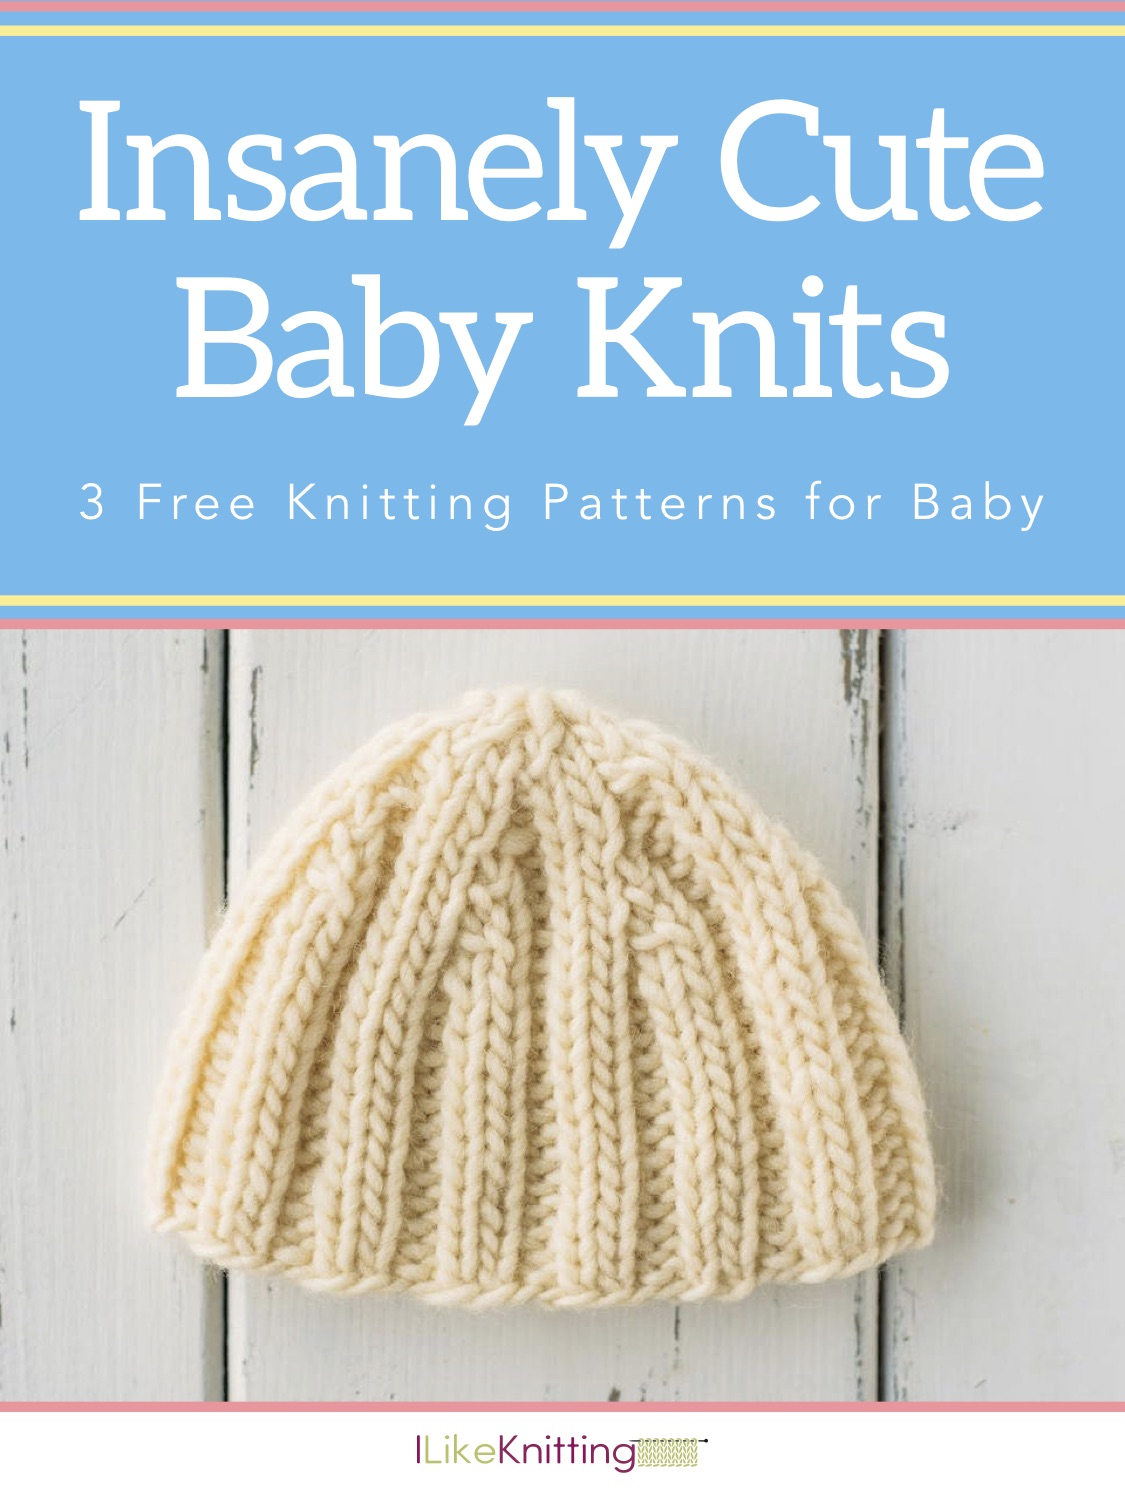 Insanely Cute Baby Knits: 3 Free Knitting Patterns for Baby